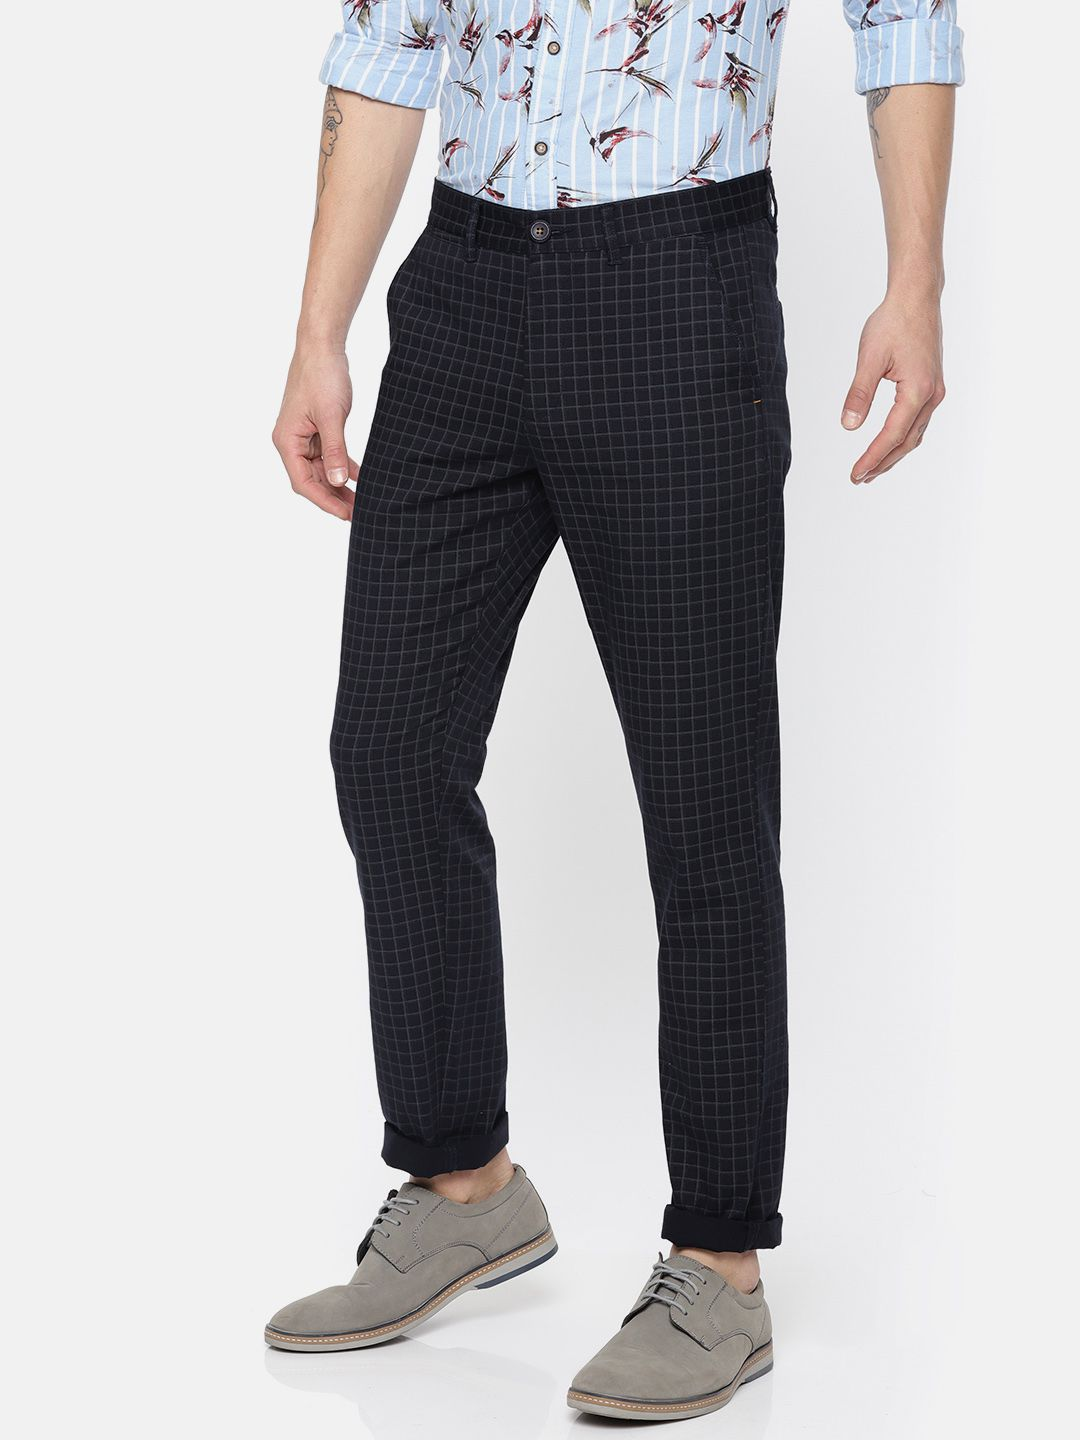 The Indian Garage Co. Navy Blue Slim -Fit Flat Chinos